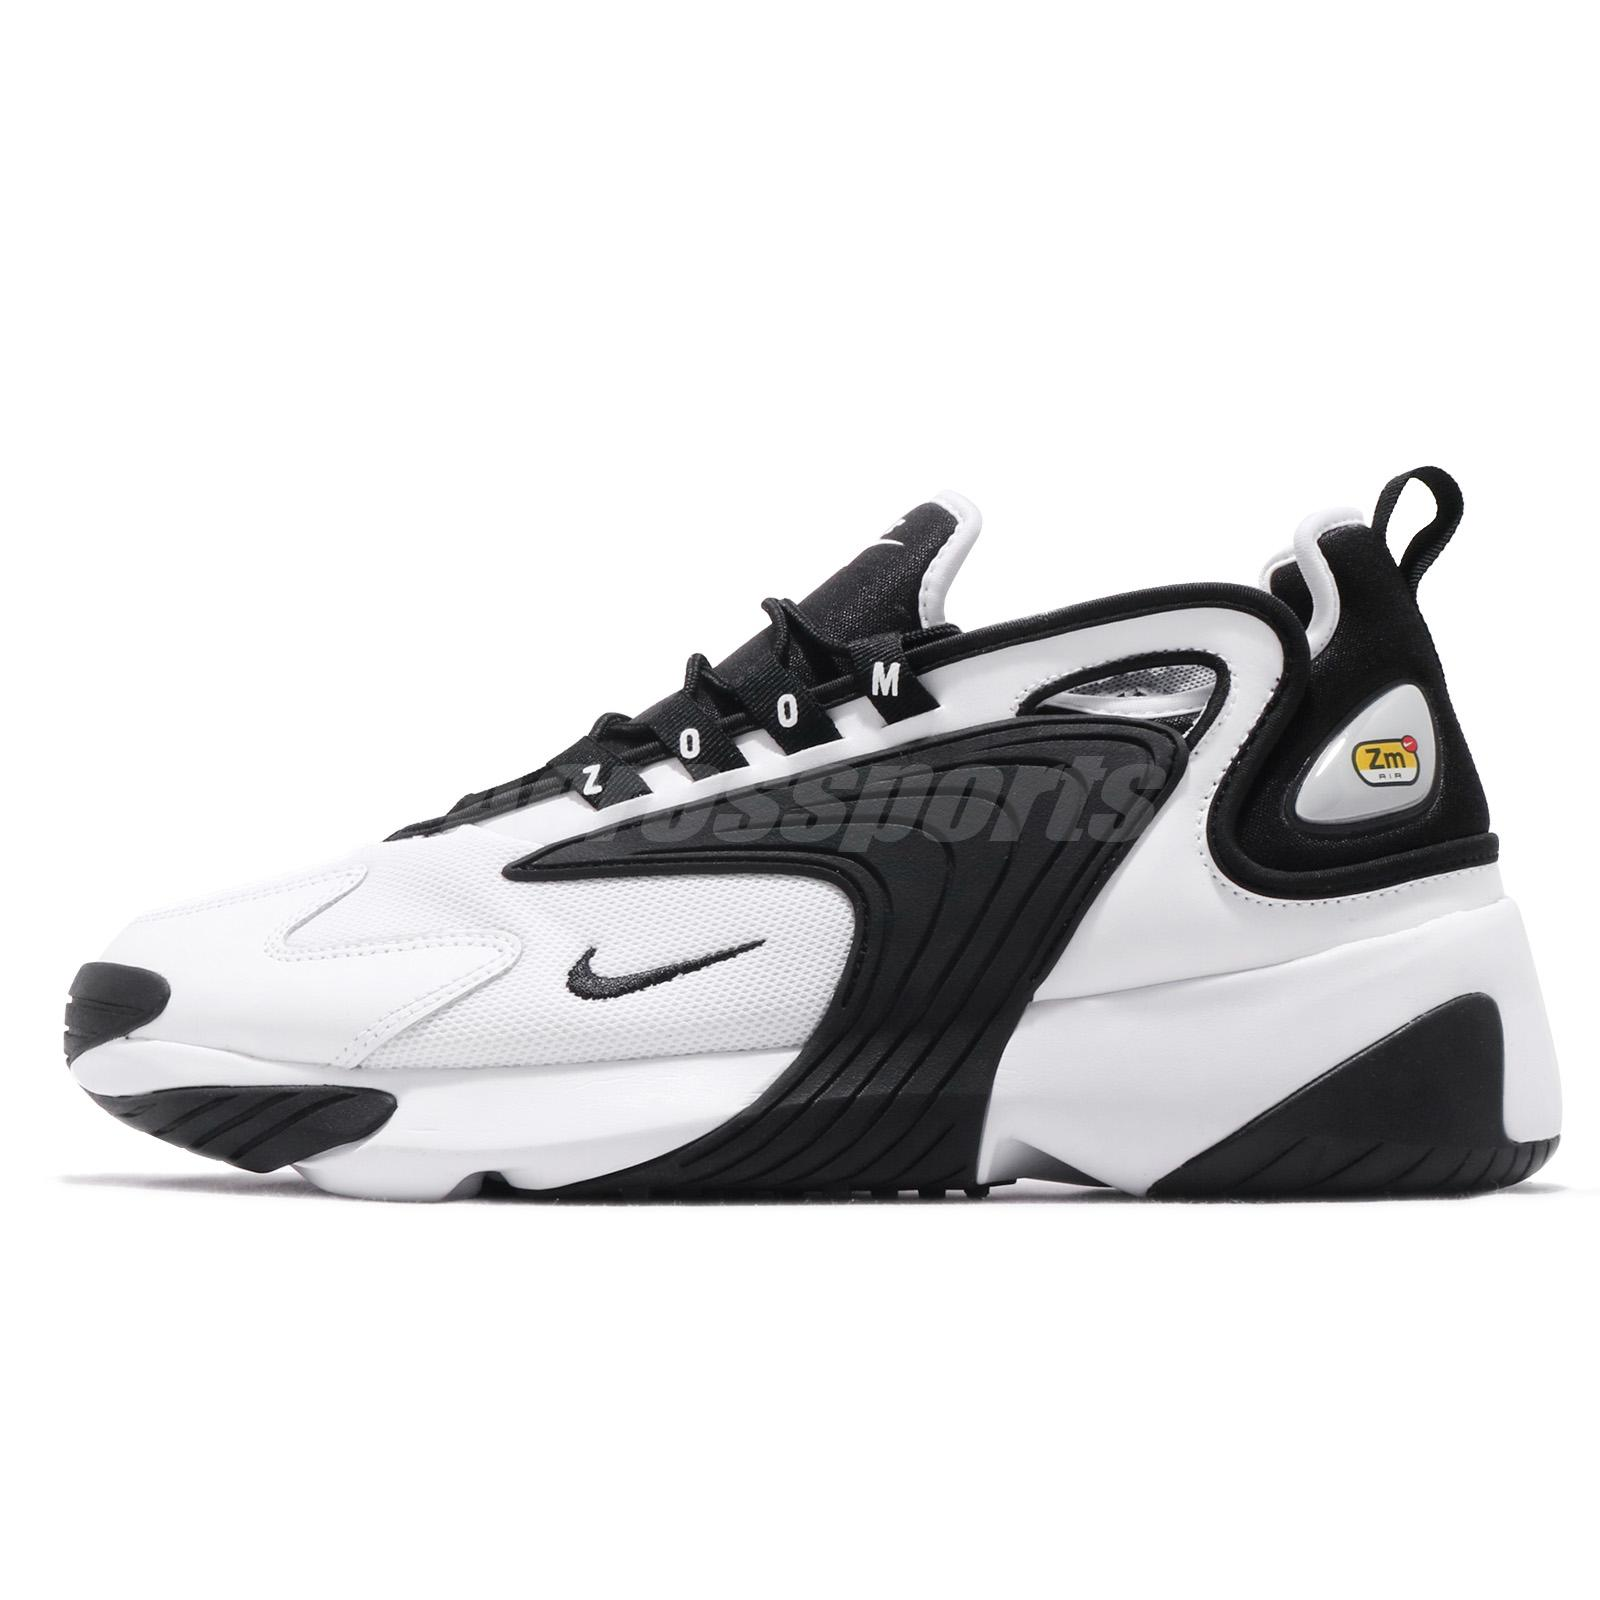 Details about Nike Zoom 2K ZM Air 2000 White Black Men Lifestyle Shoes Sneakers AO0269-101